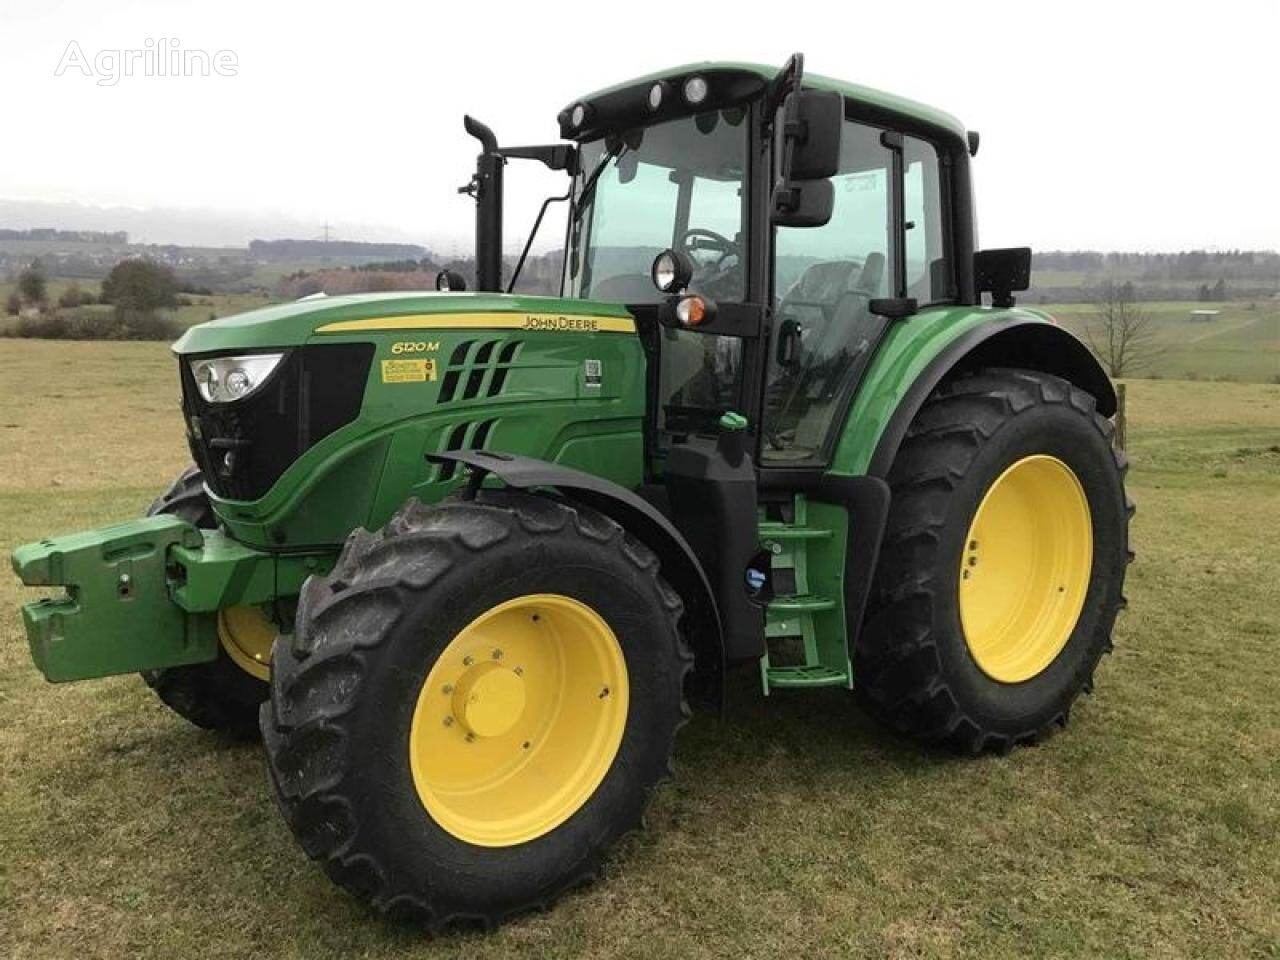 JOHN DEERE 6120M CQ Eco Shift wheel tractor